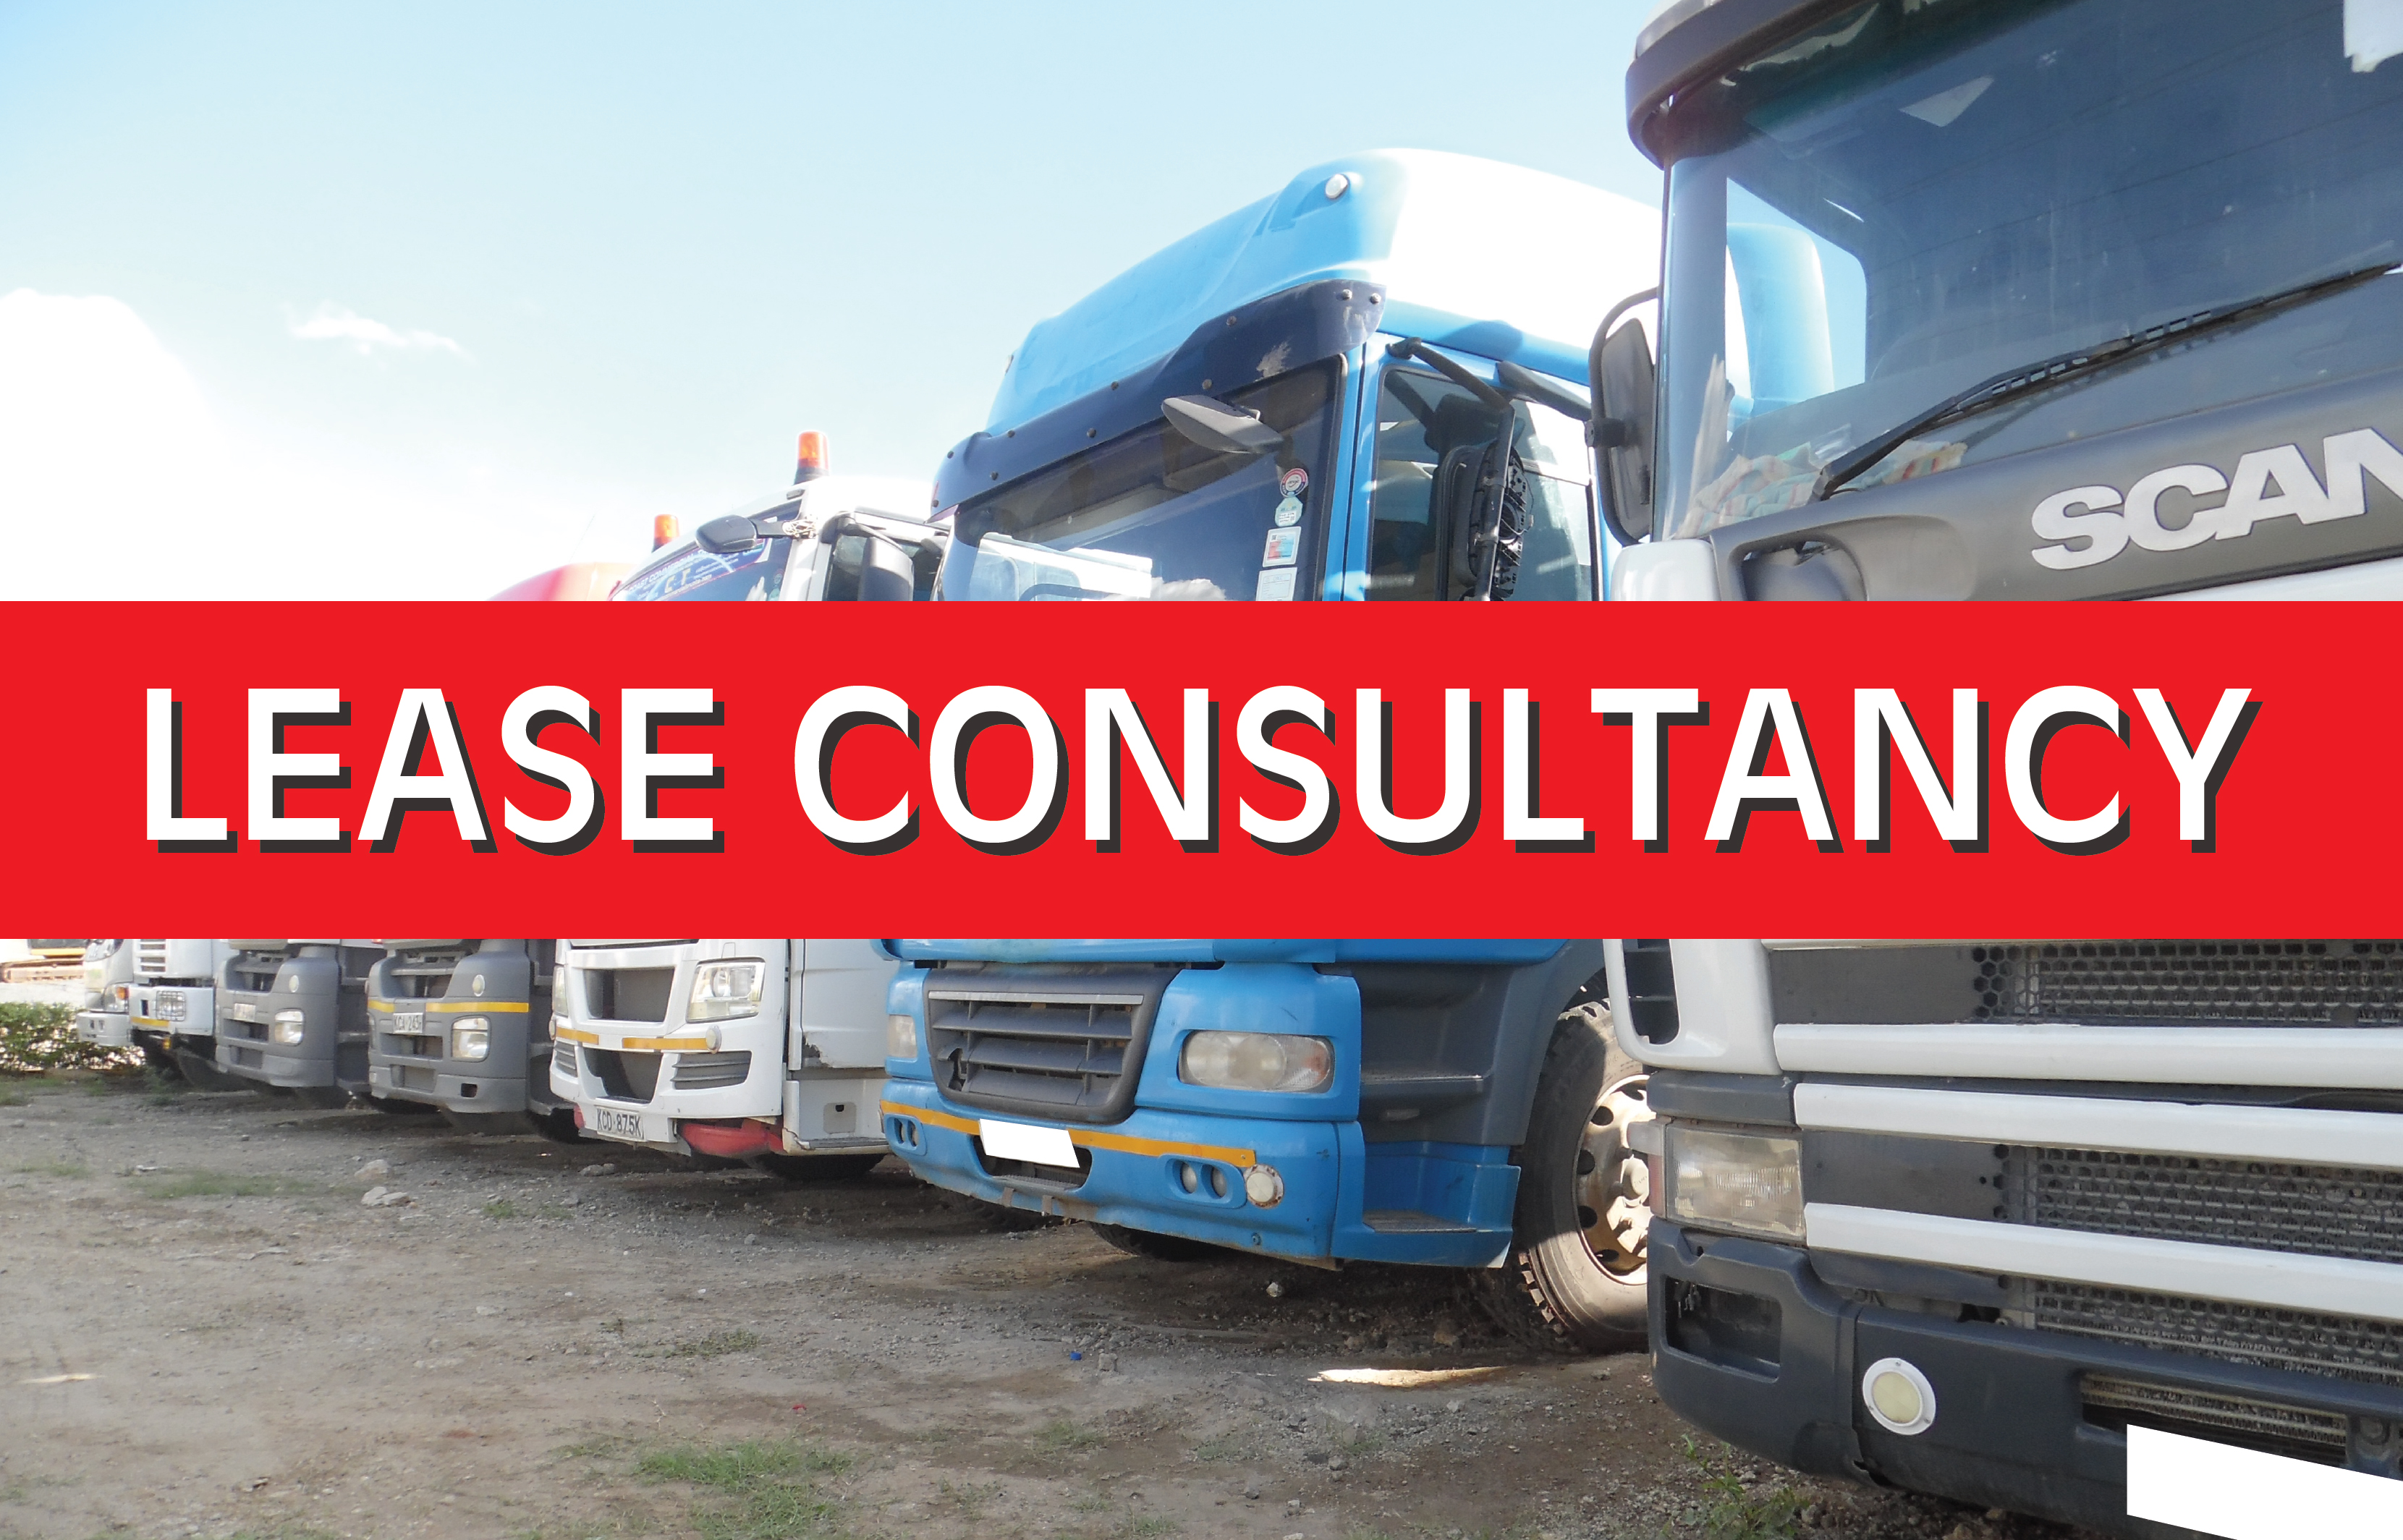 Lease consultancy